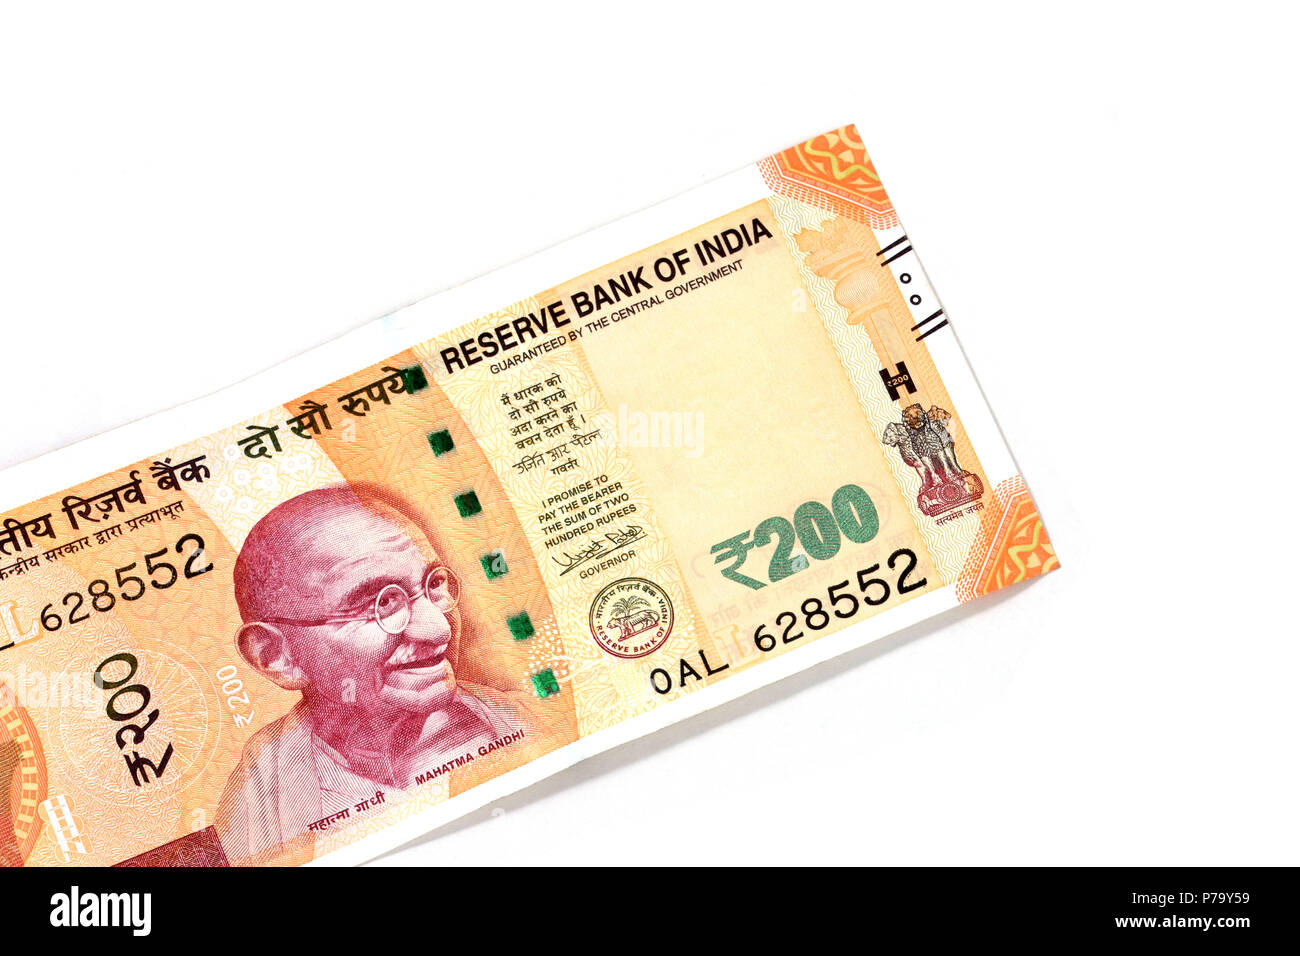 New Indian currency of 200 rupee note Stock Photo: 211045893 - Alamy